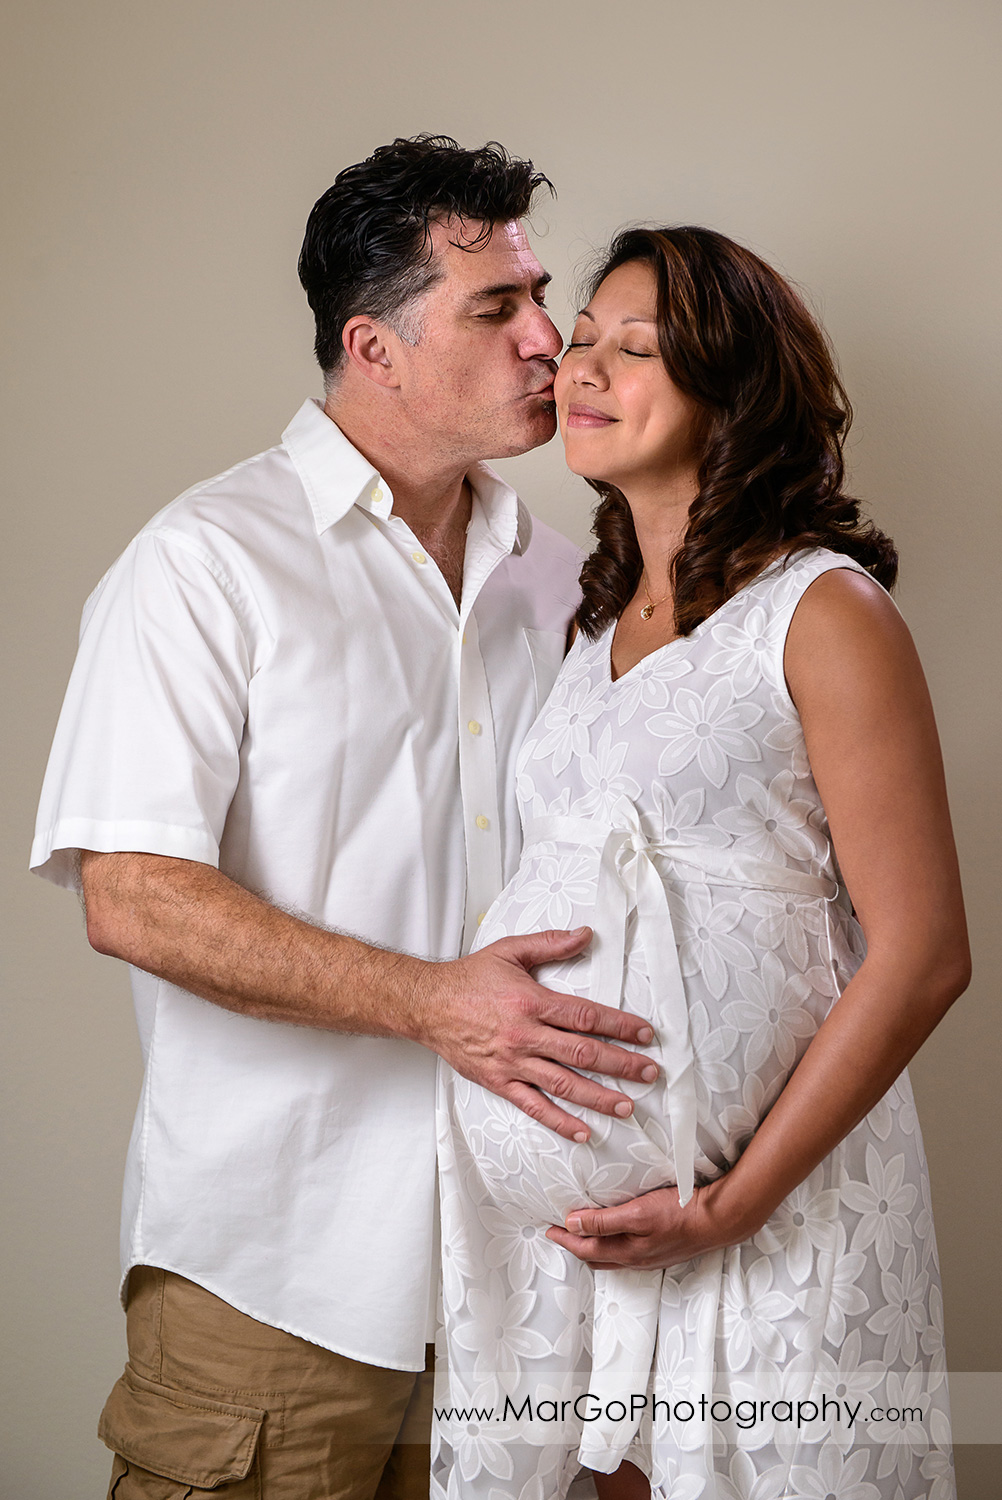 man in white shirt kissing pregnant woman in white dress during maternity session